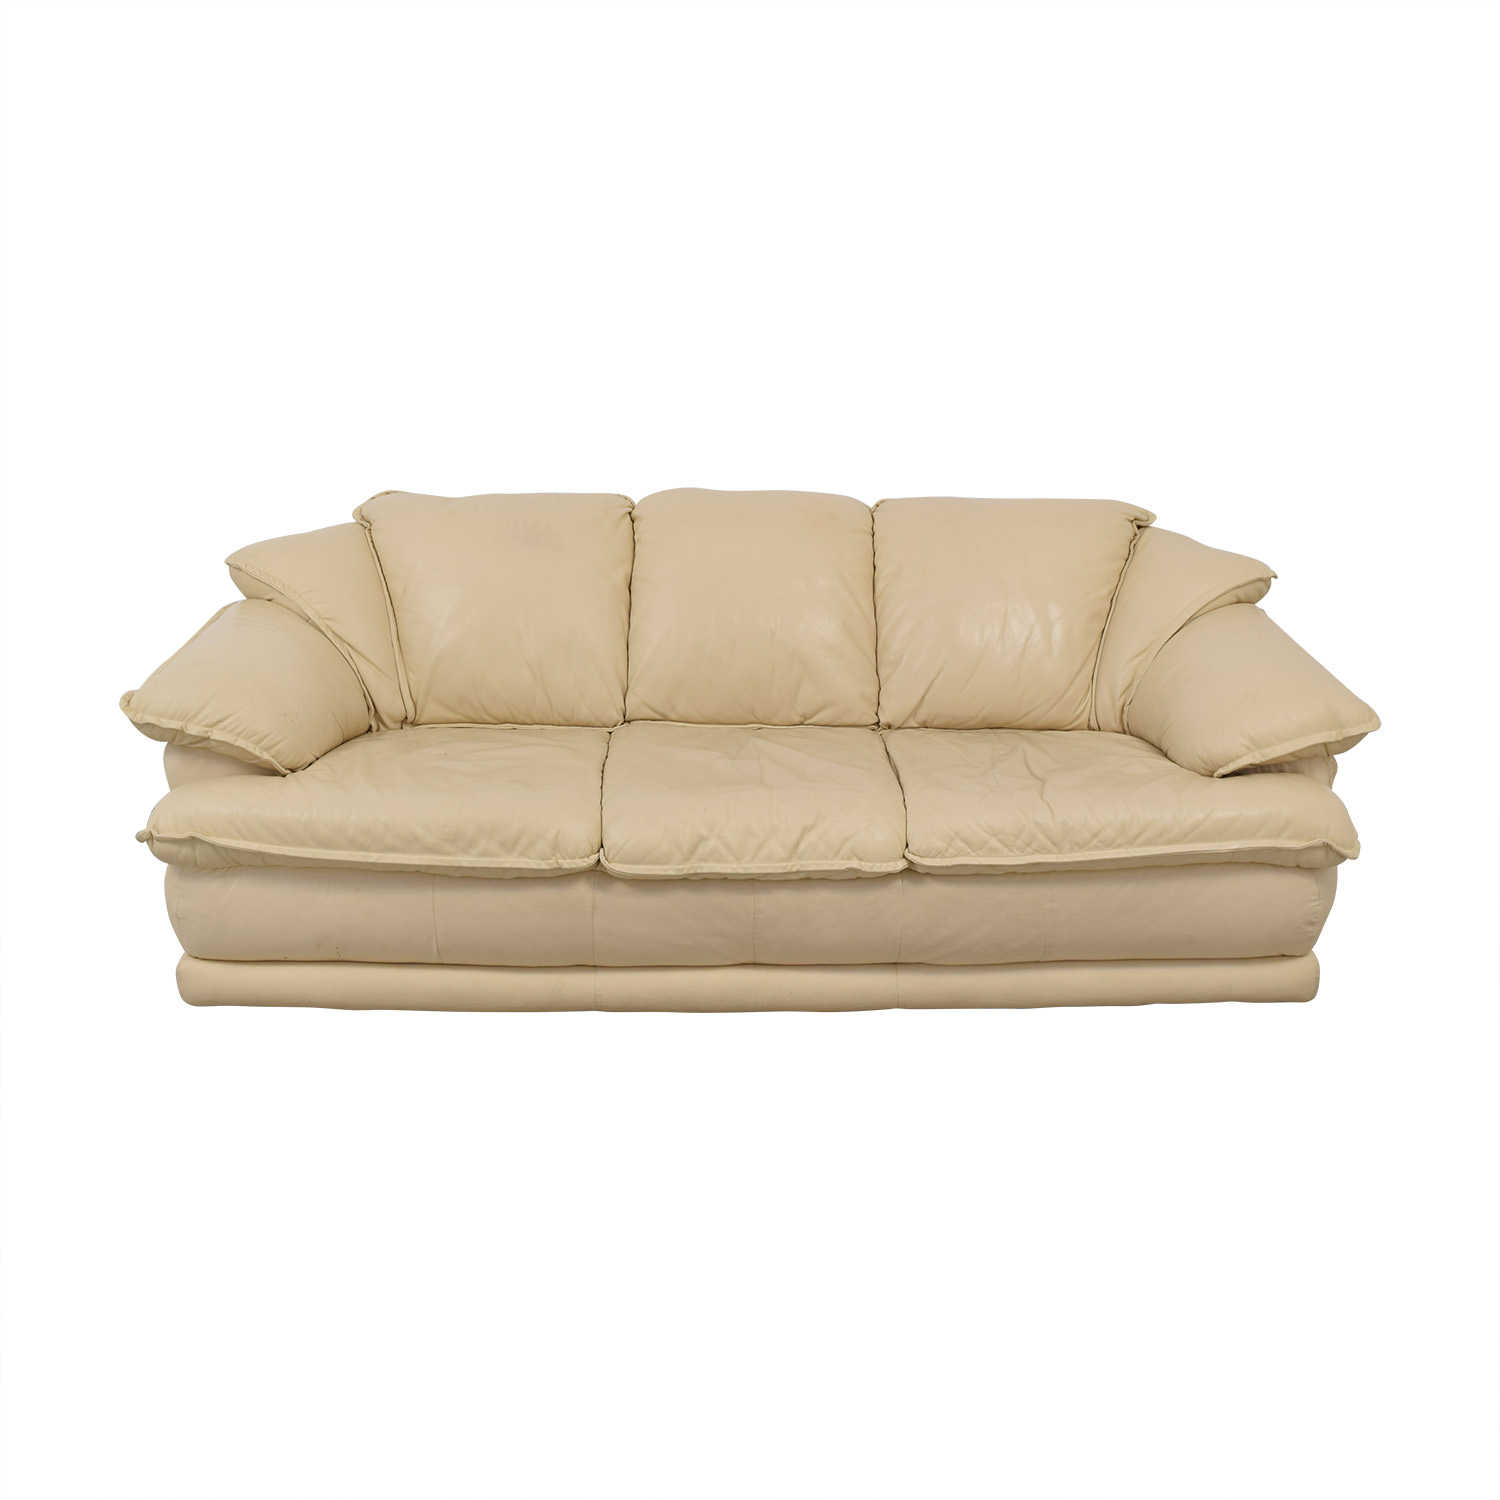 Three-Seater Beige Sofa for sale